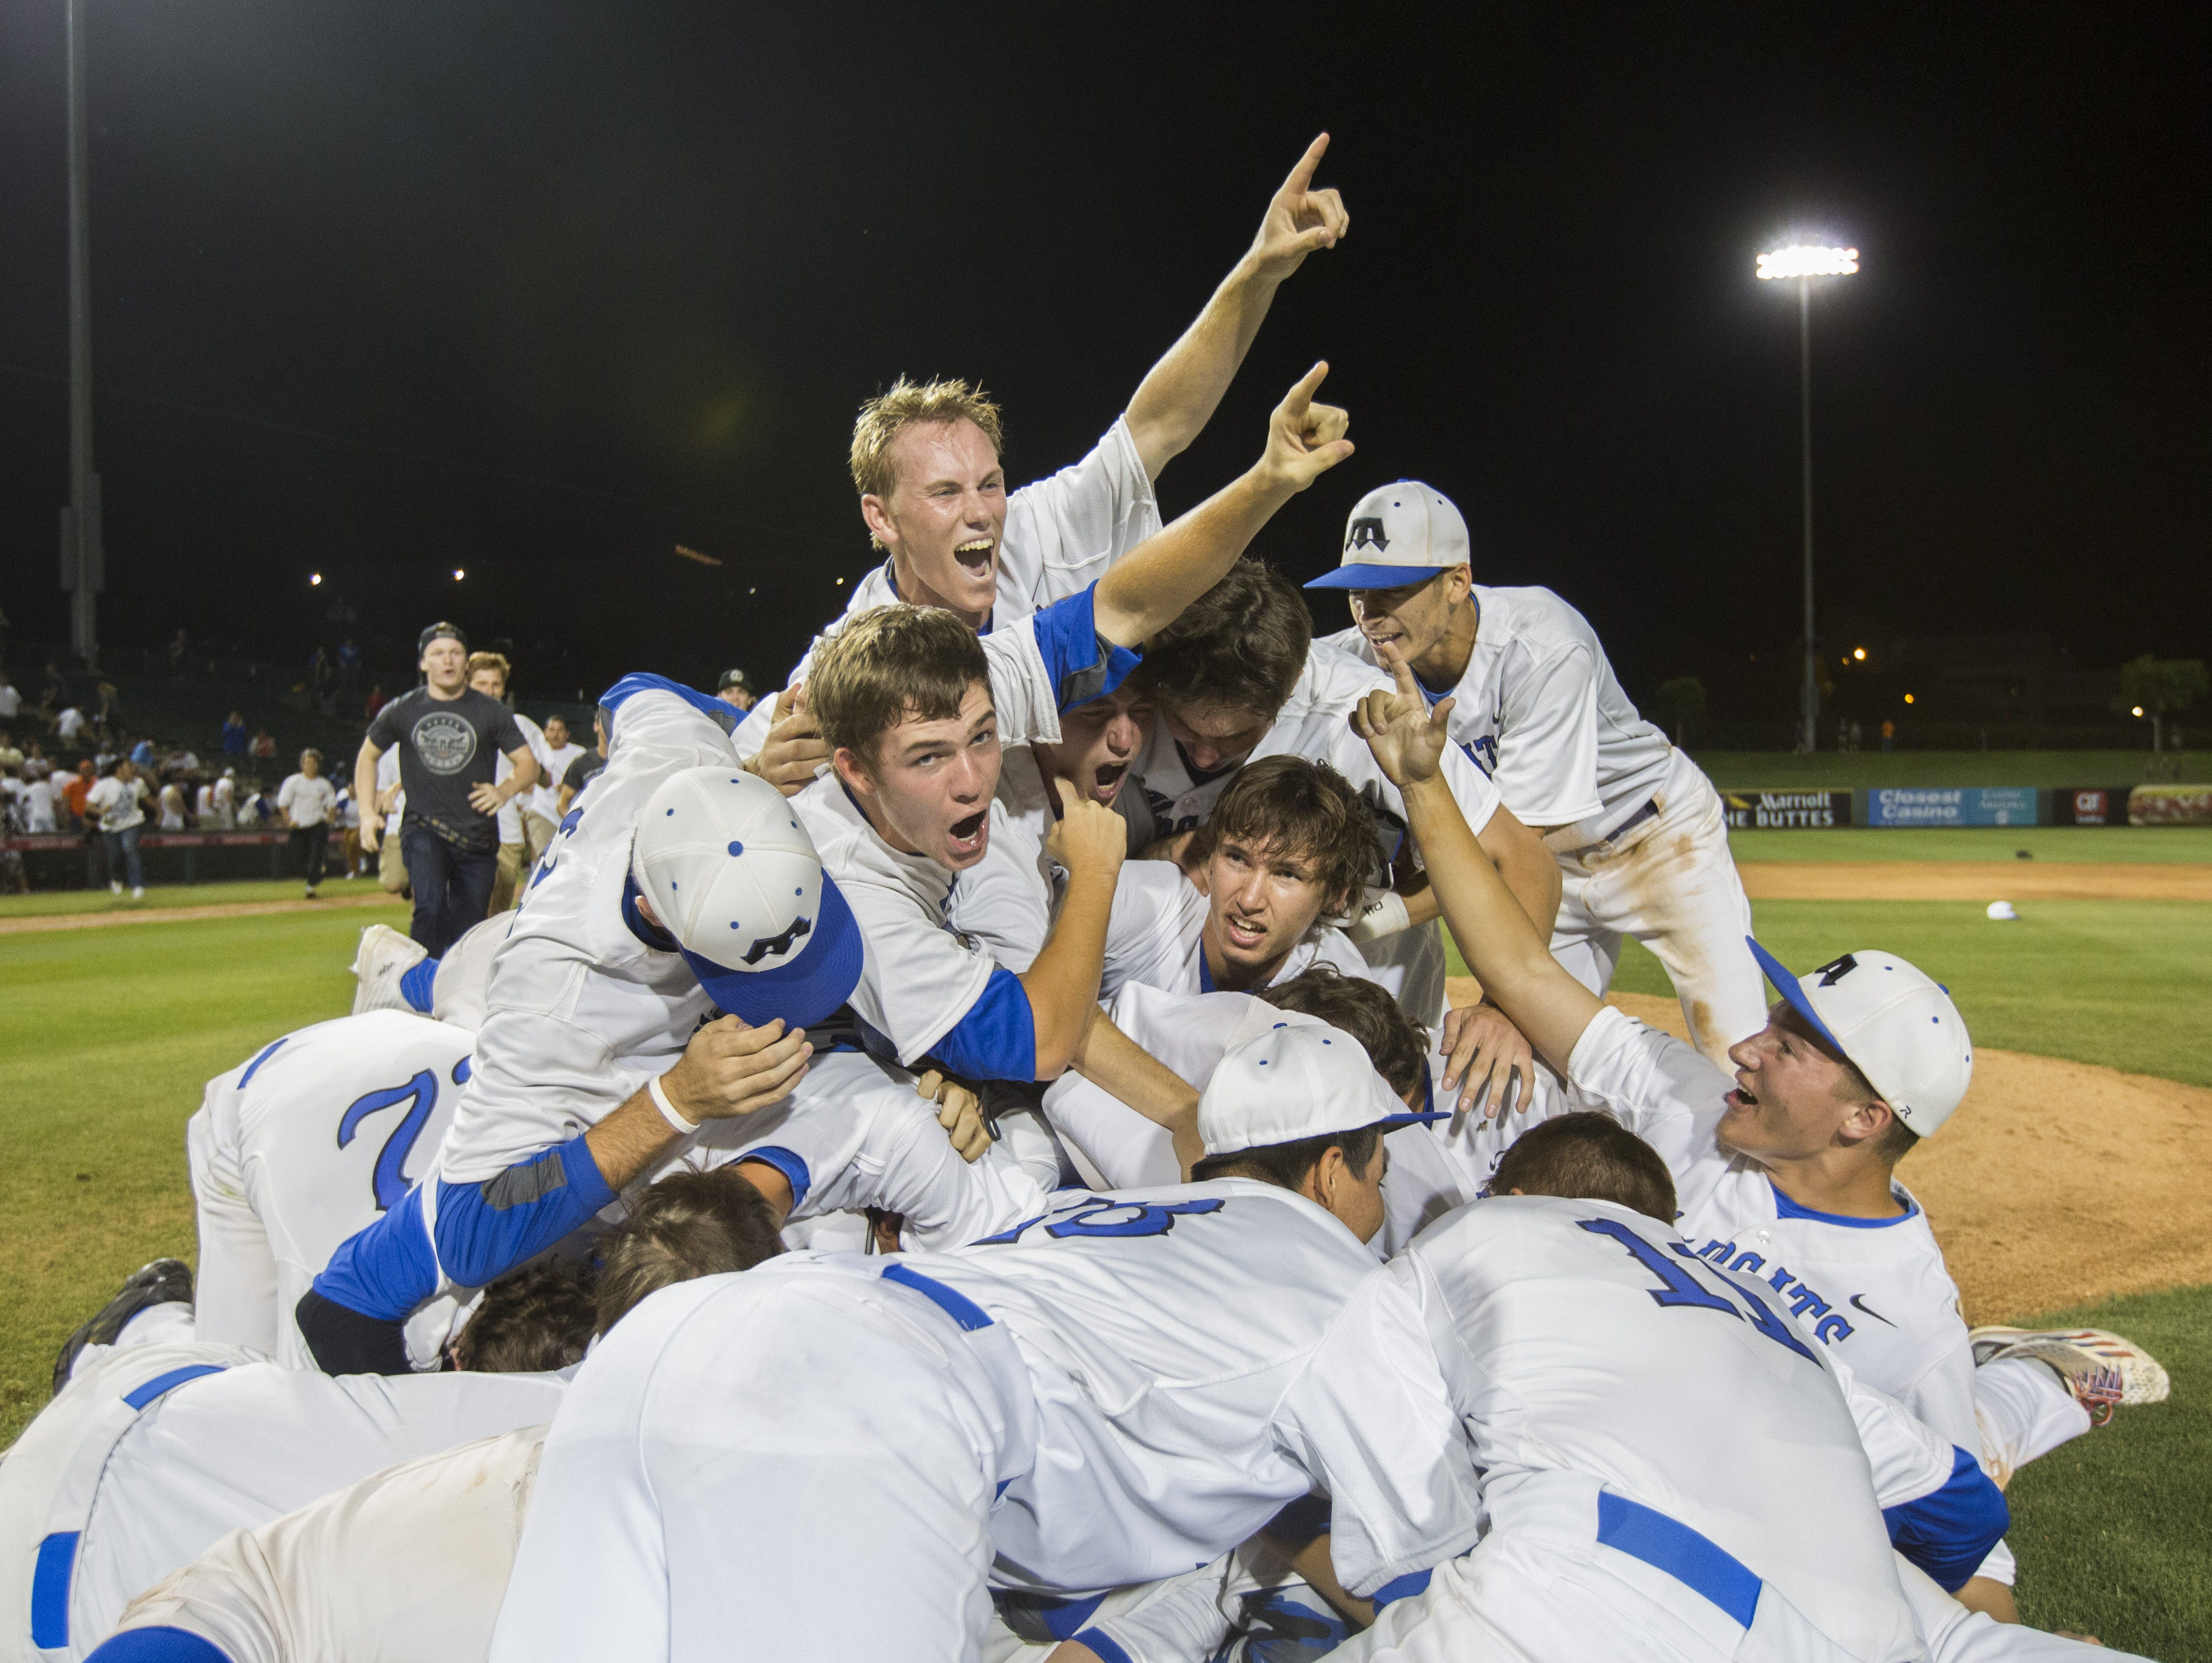 Mesquite players pile ontop of pitcher Josh Webster (12) after the team wins 5-2 over Liberty capturing the D1 State Championship game in at Tempe Diablo Stadium in Tempe, AZ on May 19, 2015.